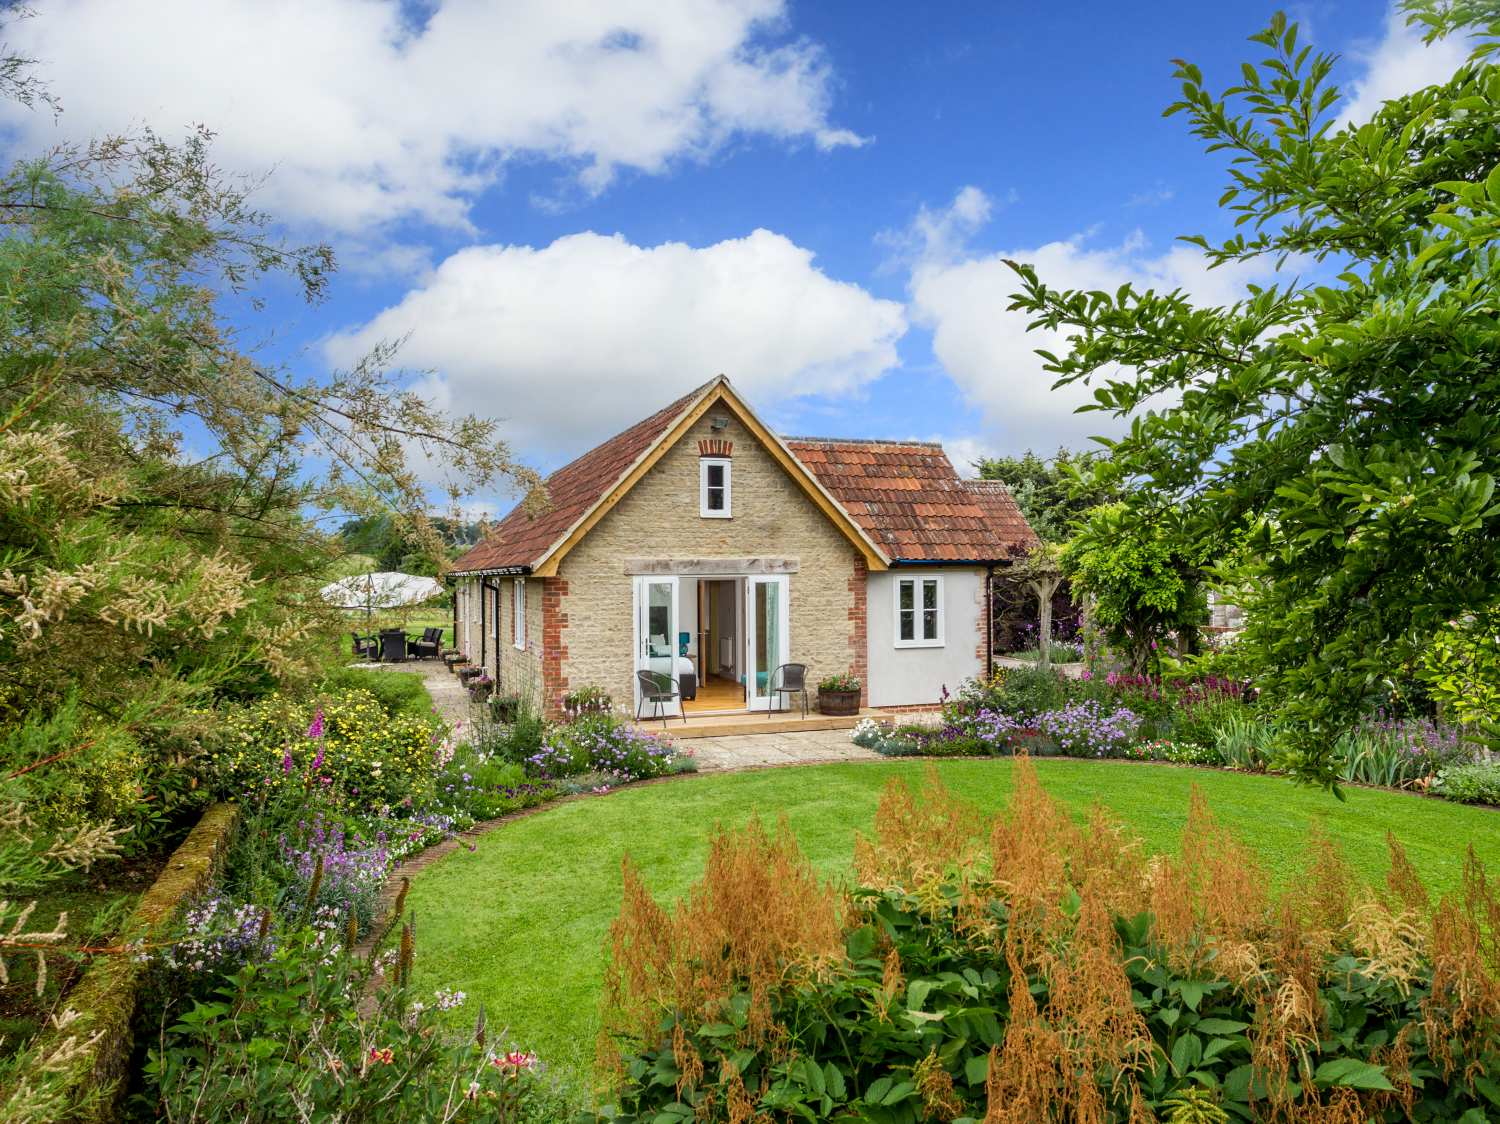 The Farm House Holiday Cottage Upper Seagry8